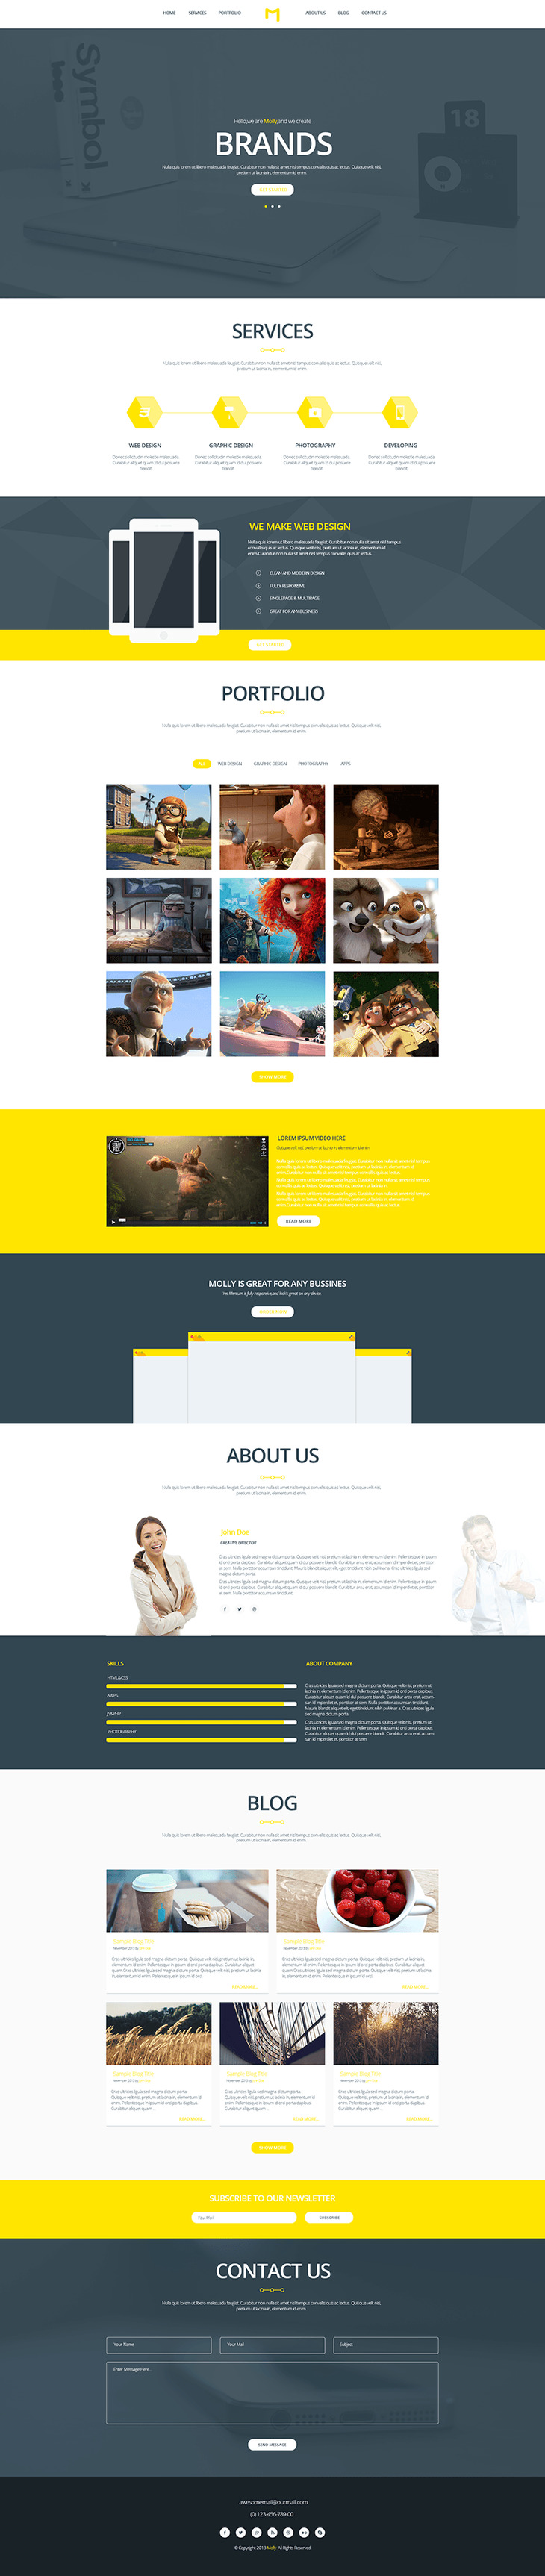 Molly - Free Bootstrap Single Page Portfolio Template preview